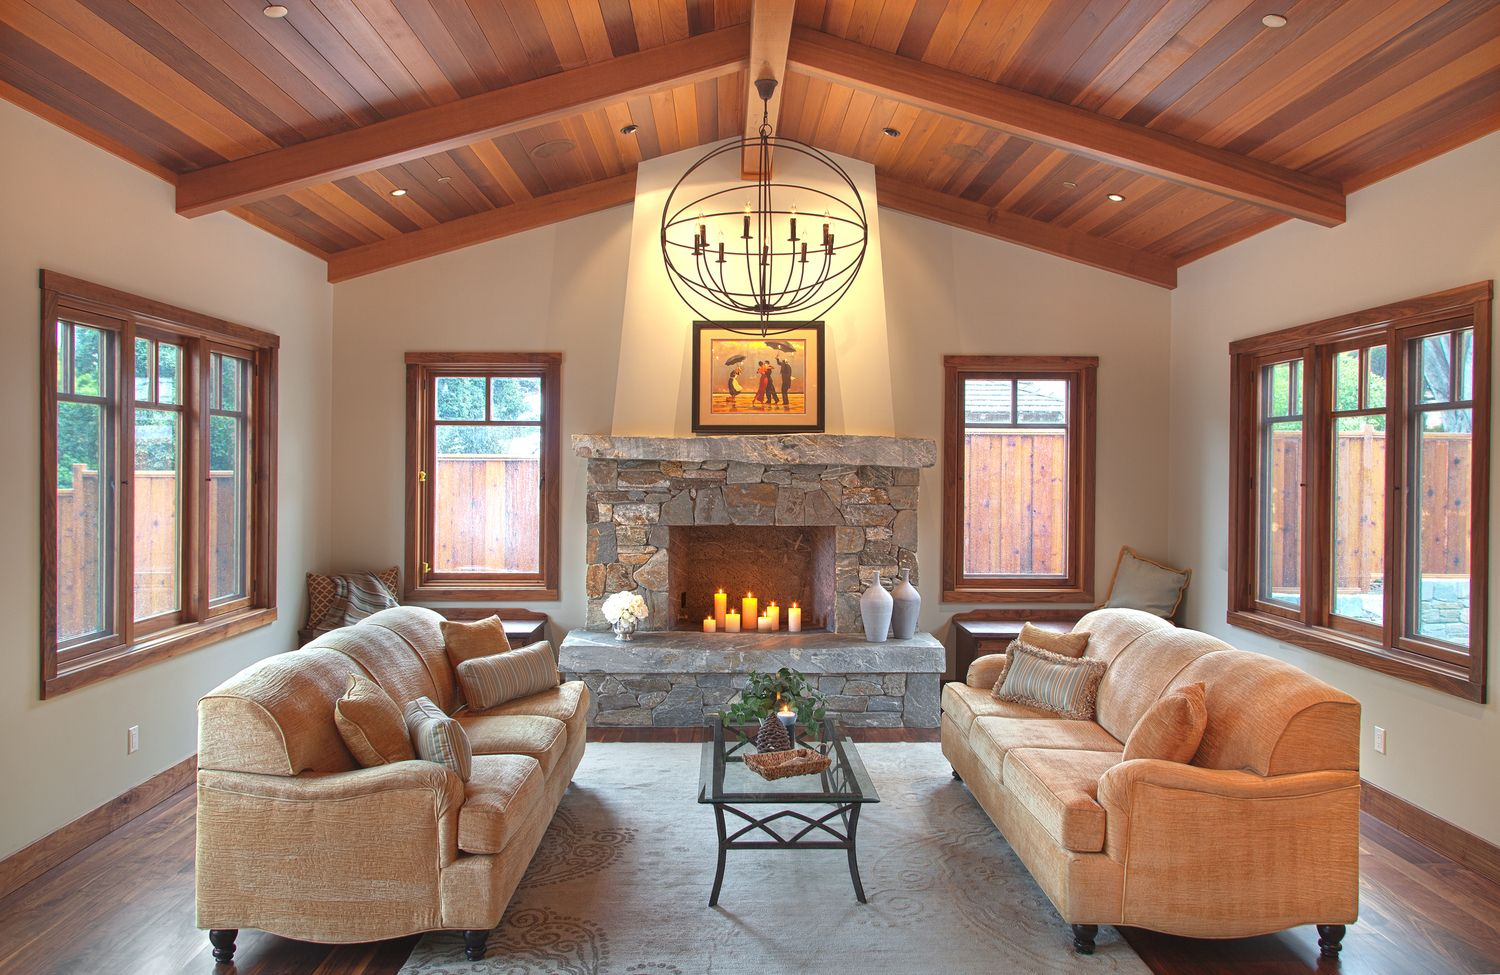 Tongue and groove Western red cedar ceiling. Blue schist firep ...